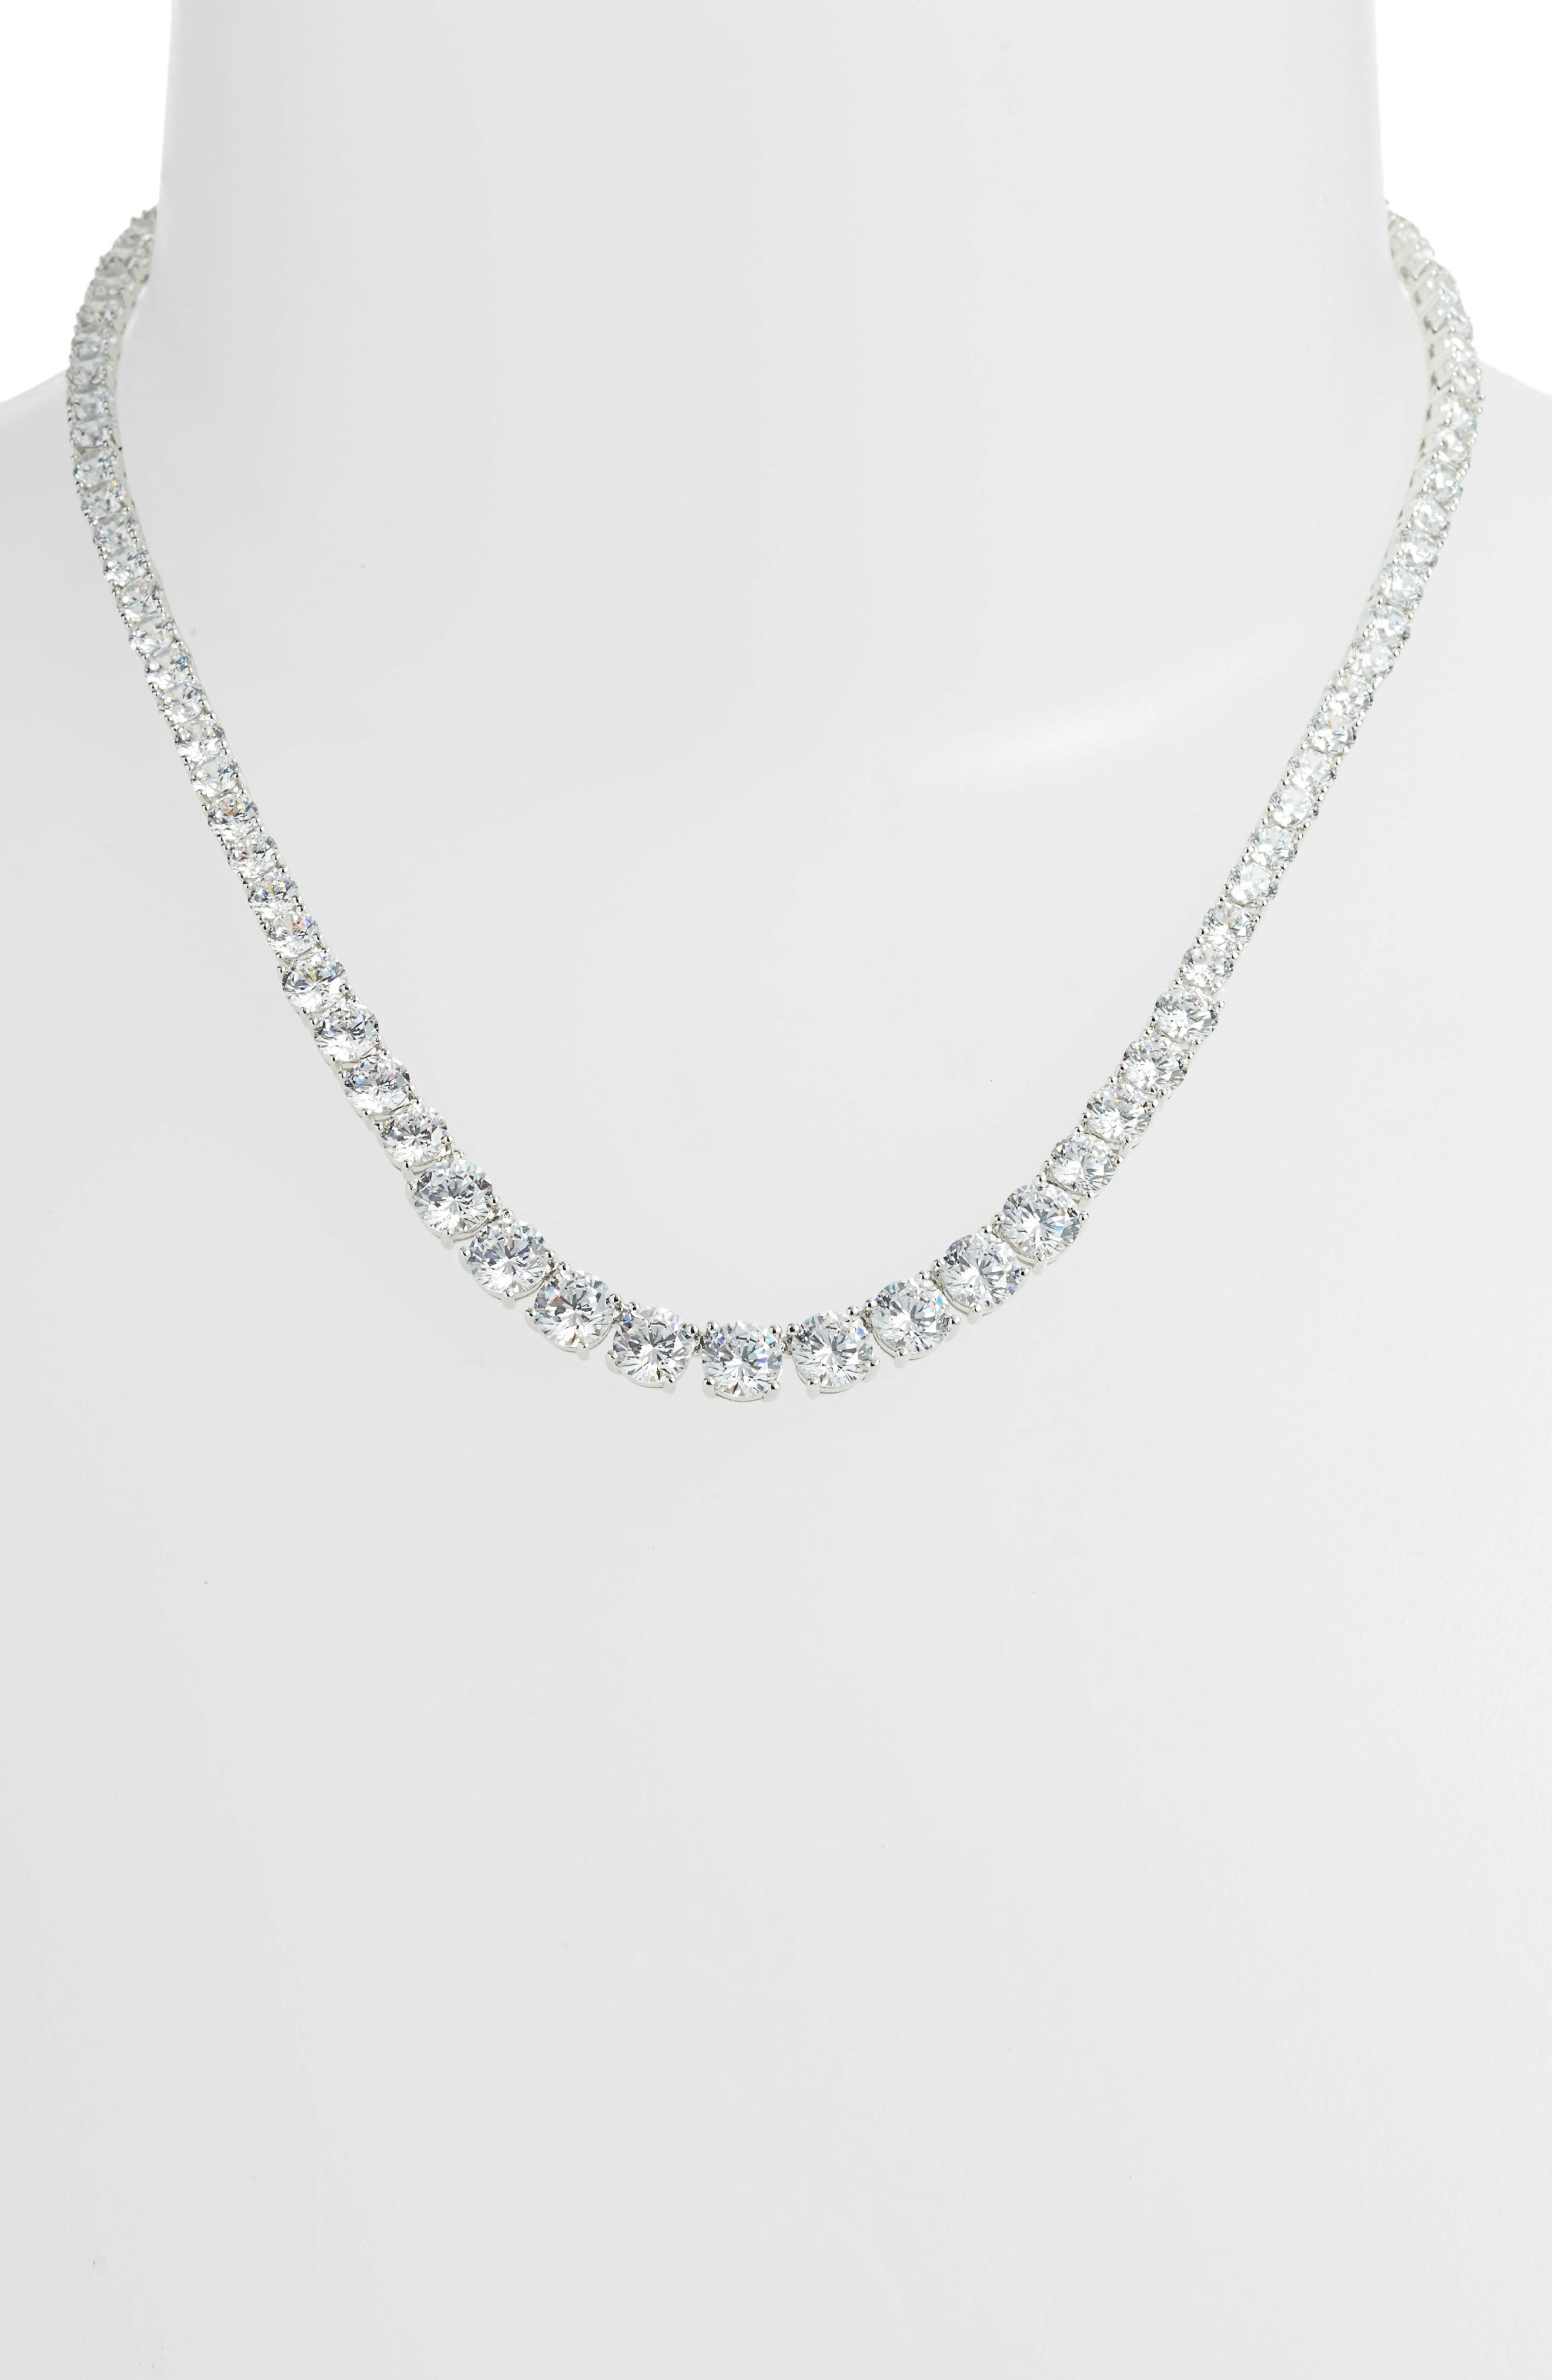 Cubic Zirconia Collar Necklace,                             Alternate thumbnail 3, color,                             SILVER